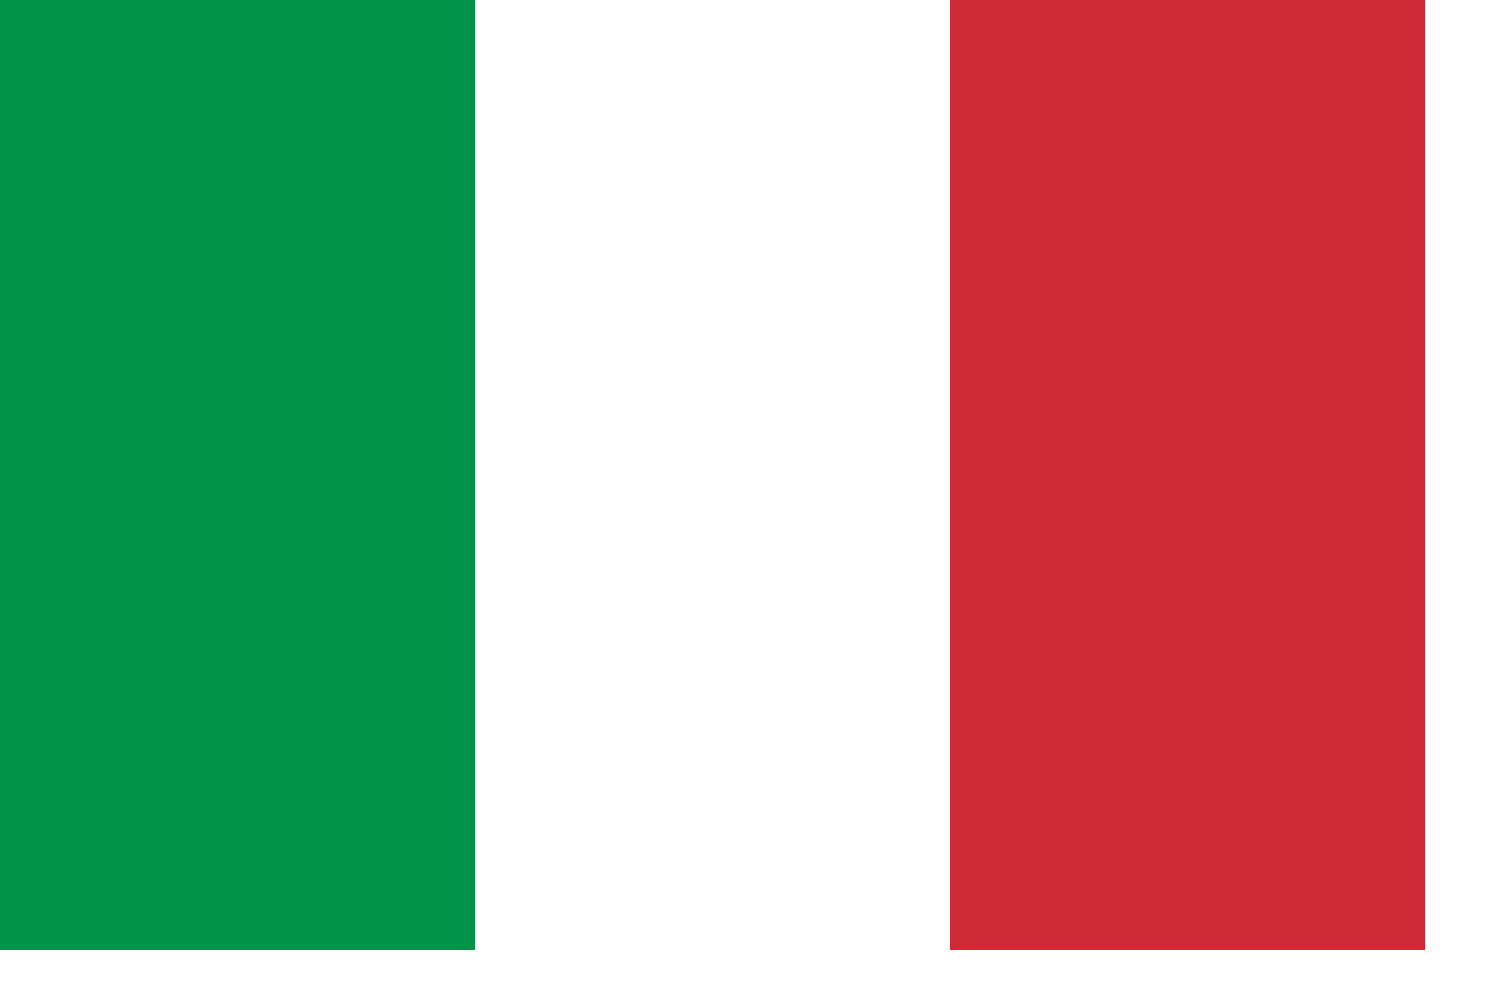 translate any text from English to Italian